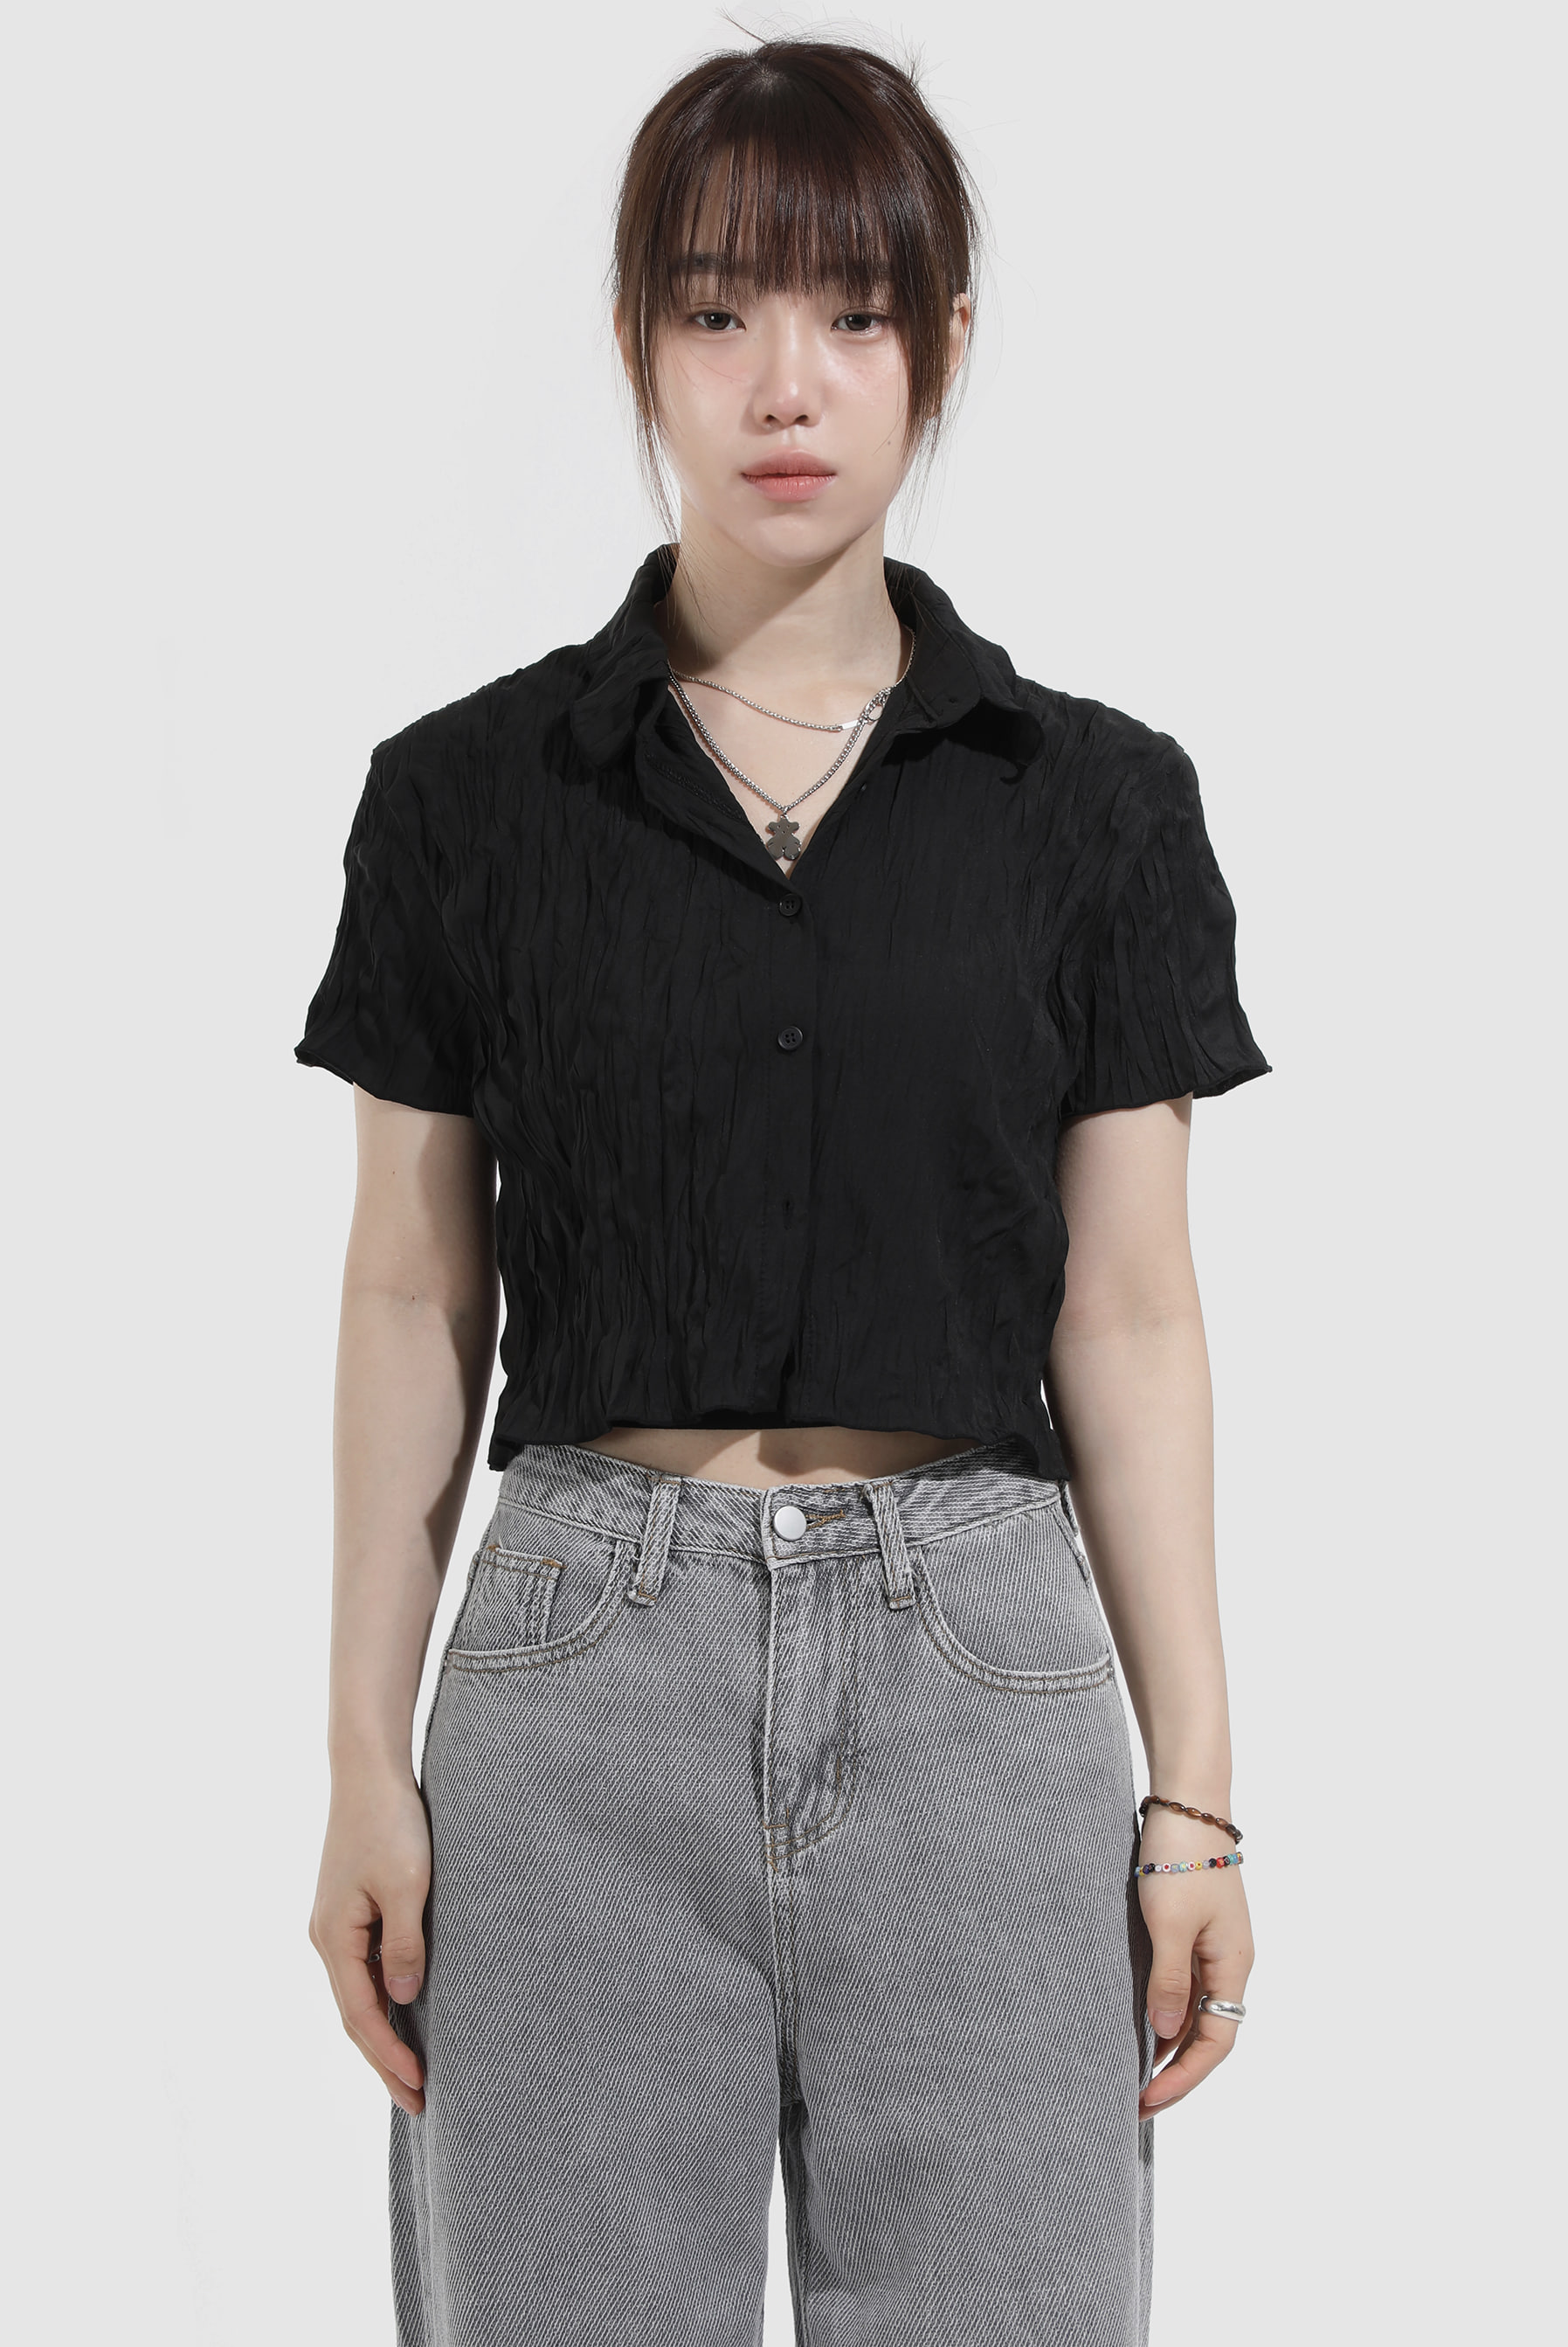 Swing_Half Sleeve_Shirts